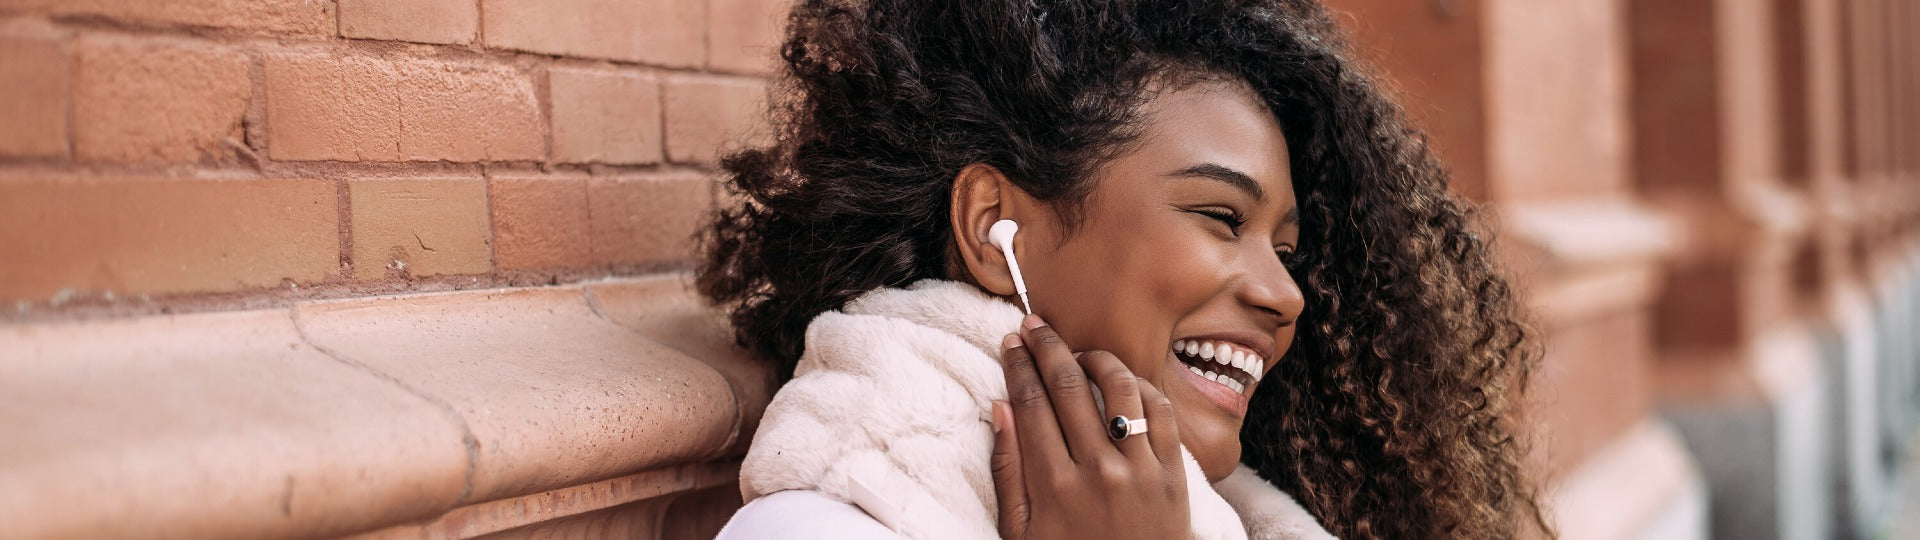 Woman with beautiful naturally curly hair listening to headphones and laughing outdoors